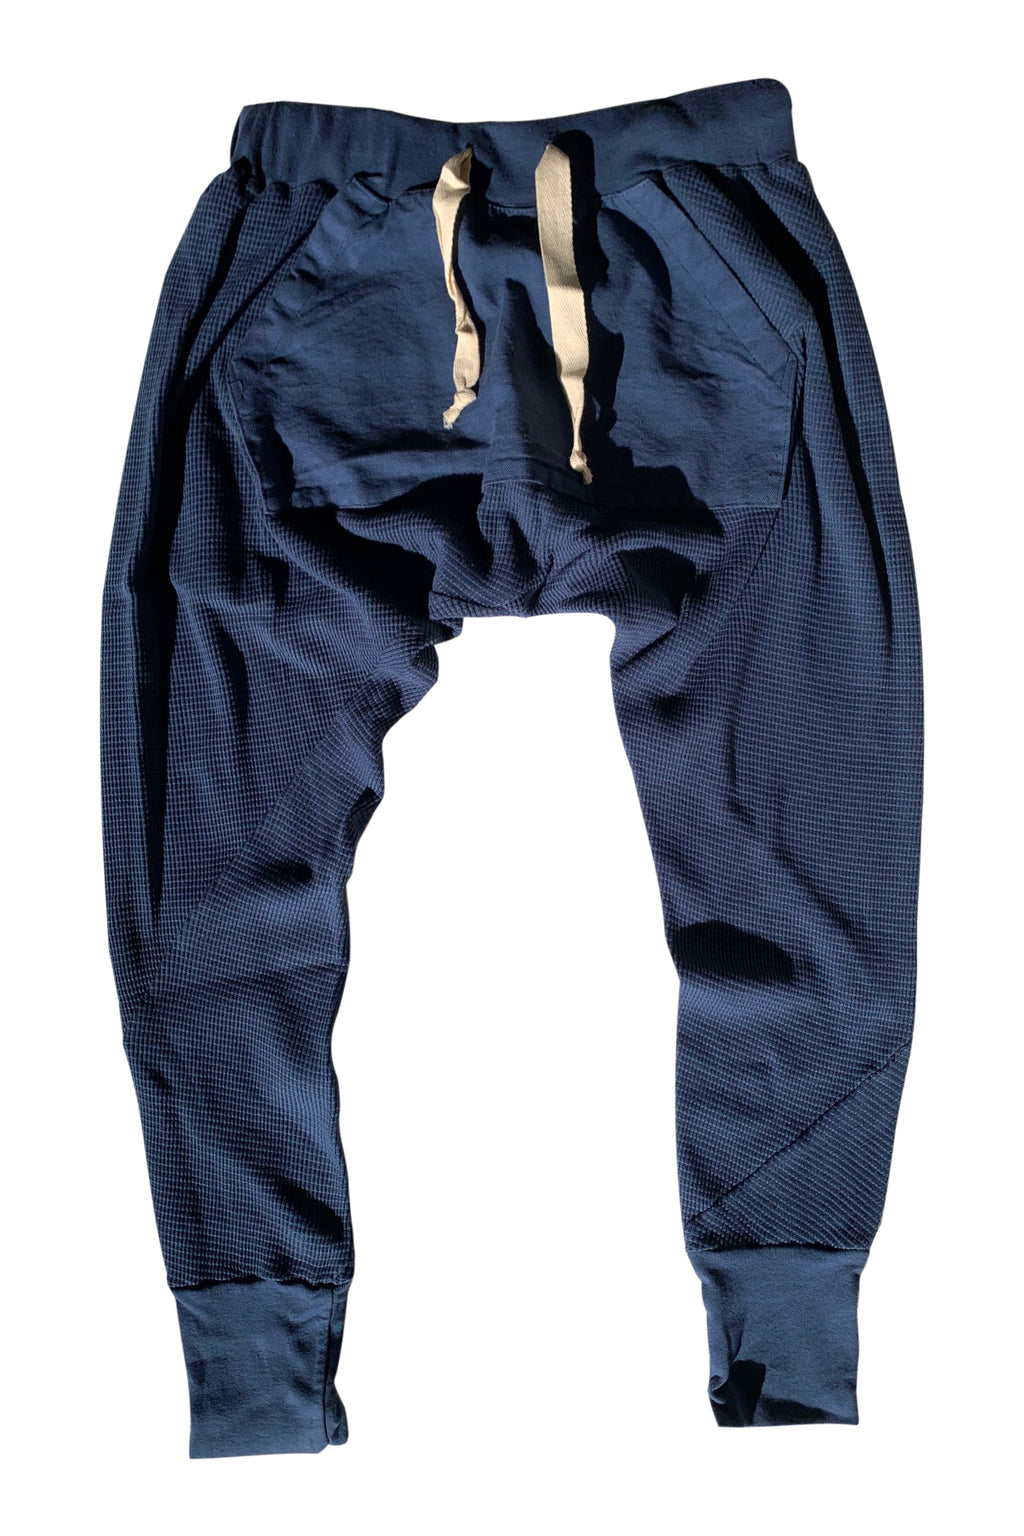 PANT THERMAL NAVY